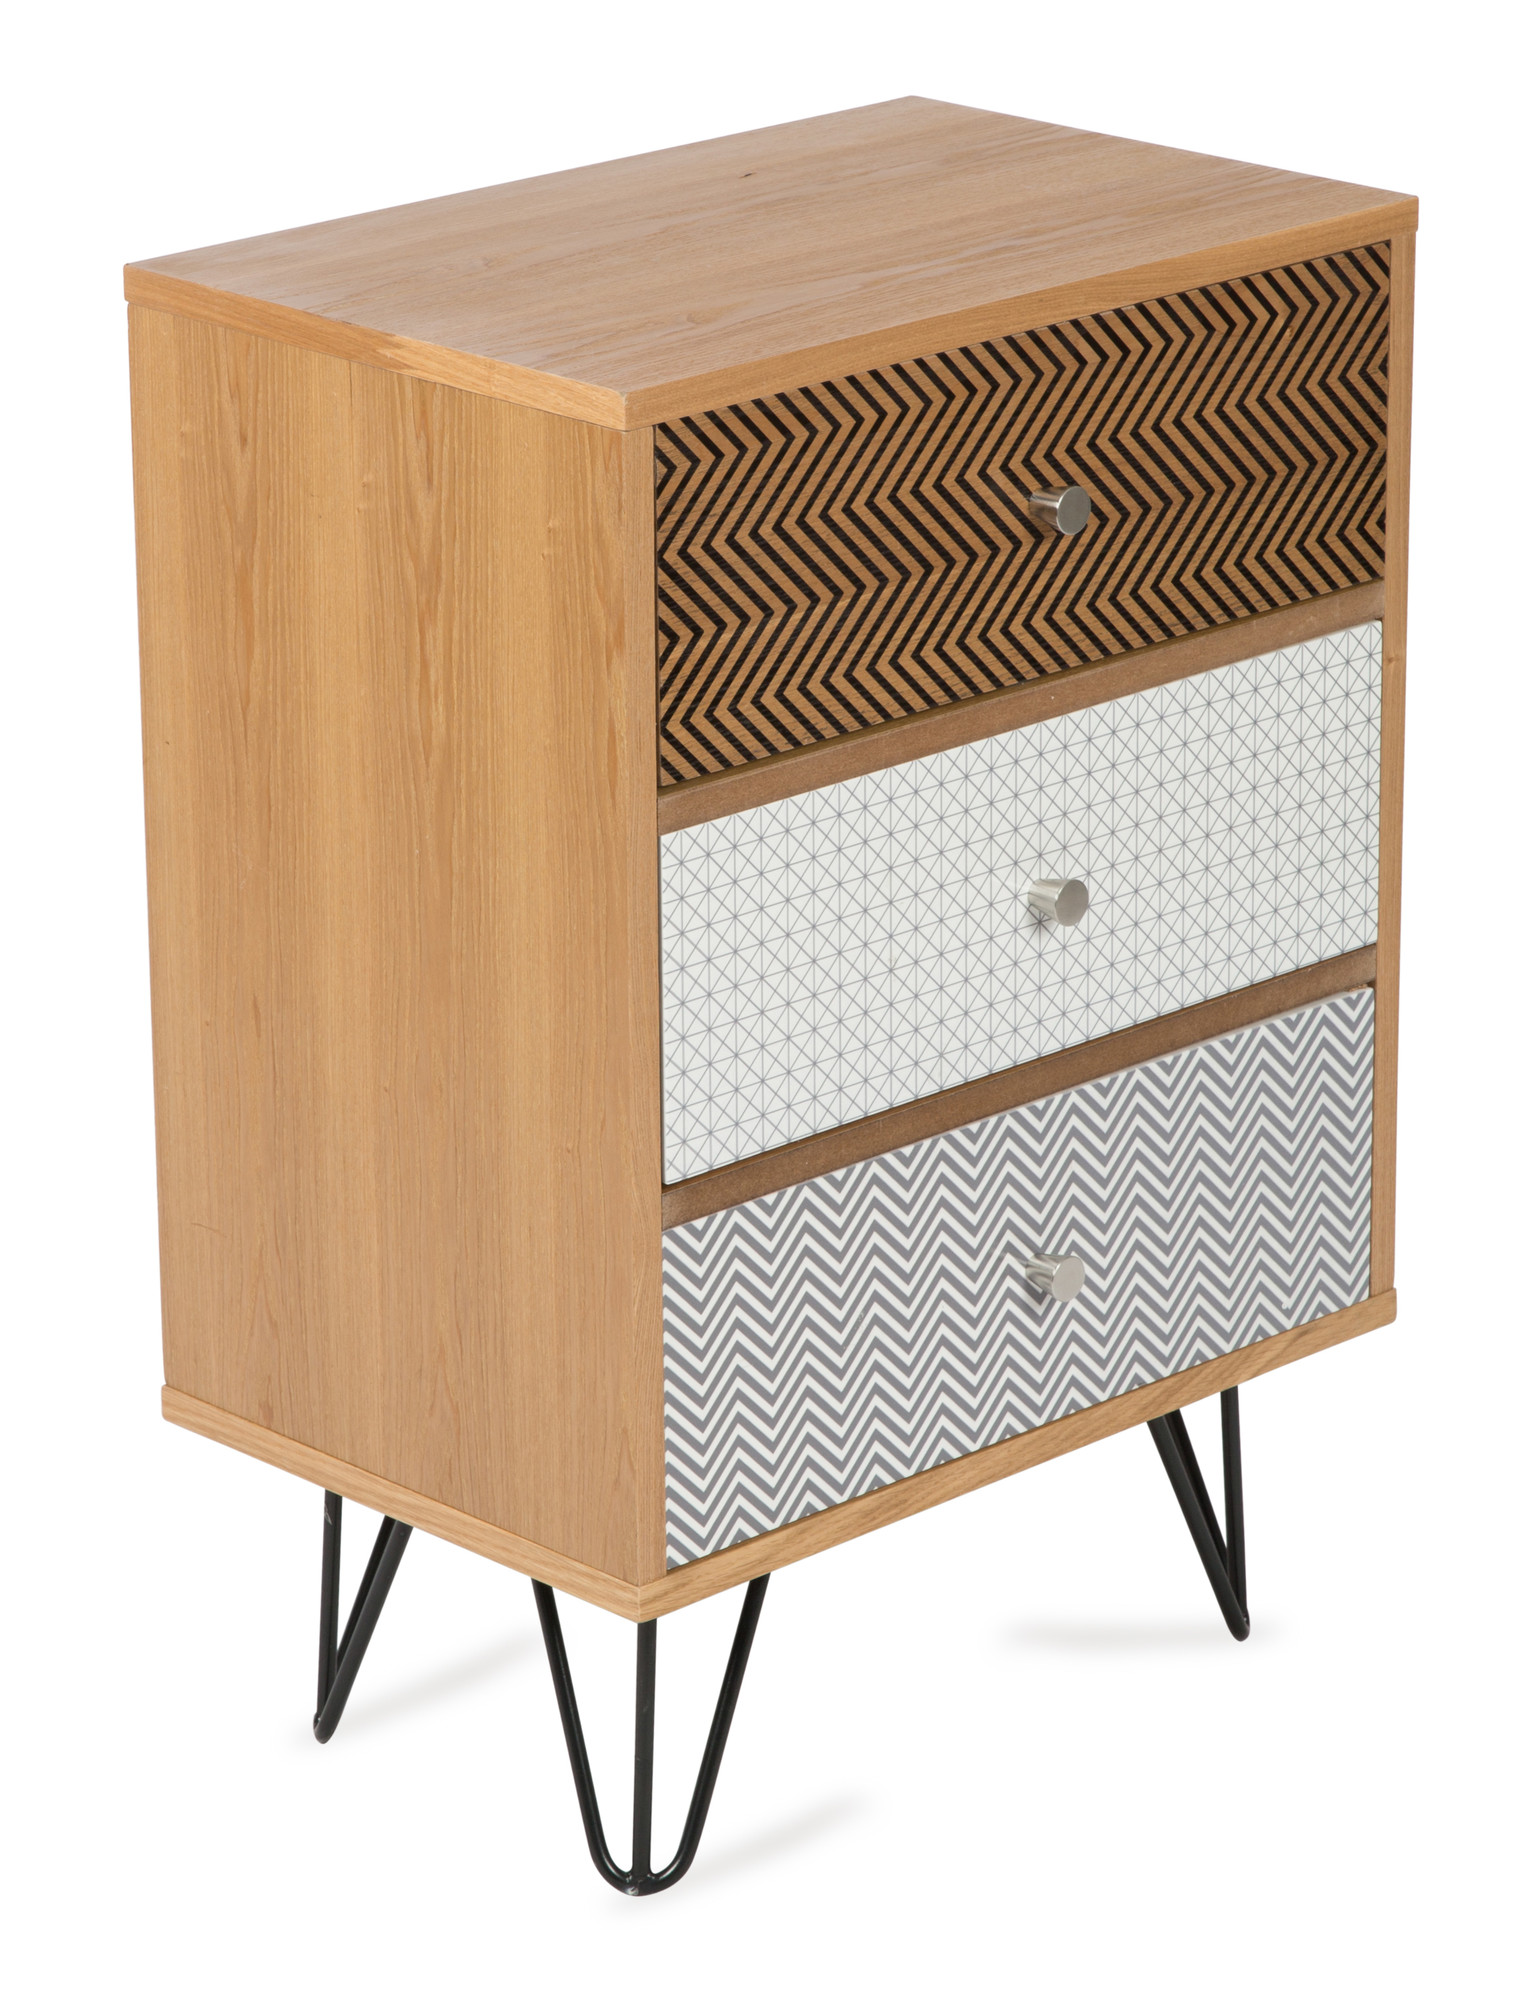 Bedside Tables with Drawers | Mid Century Bedside Tables | Modern Bedside Tables